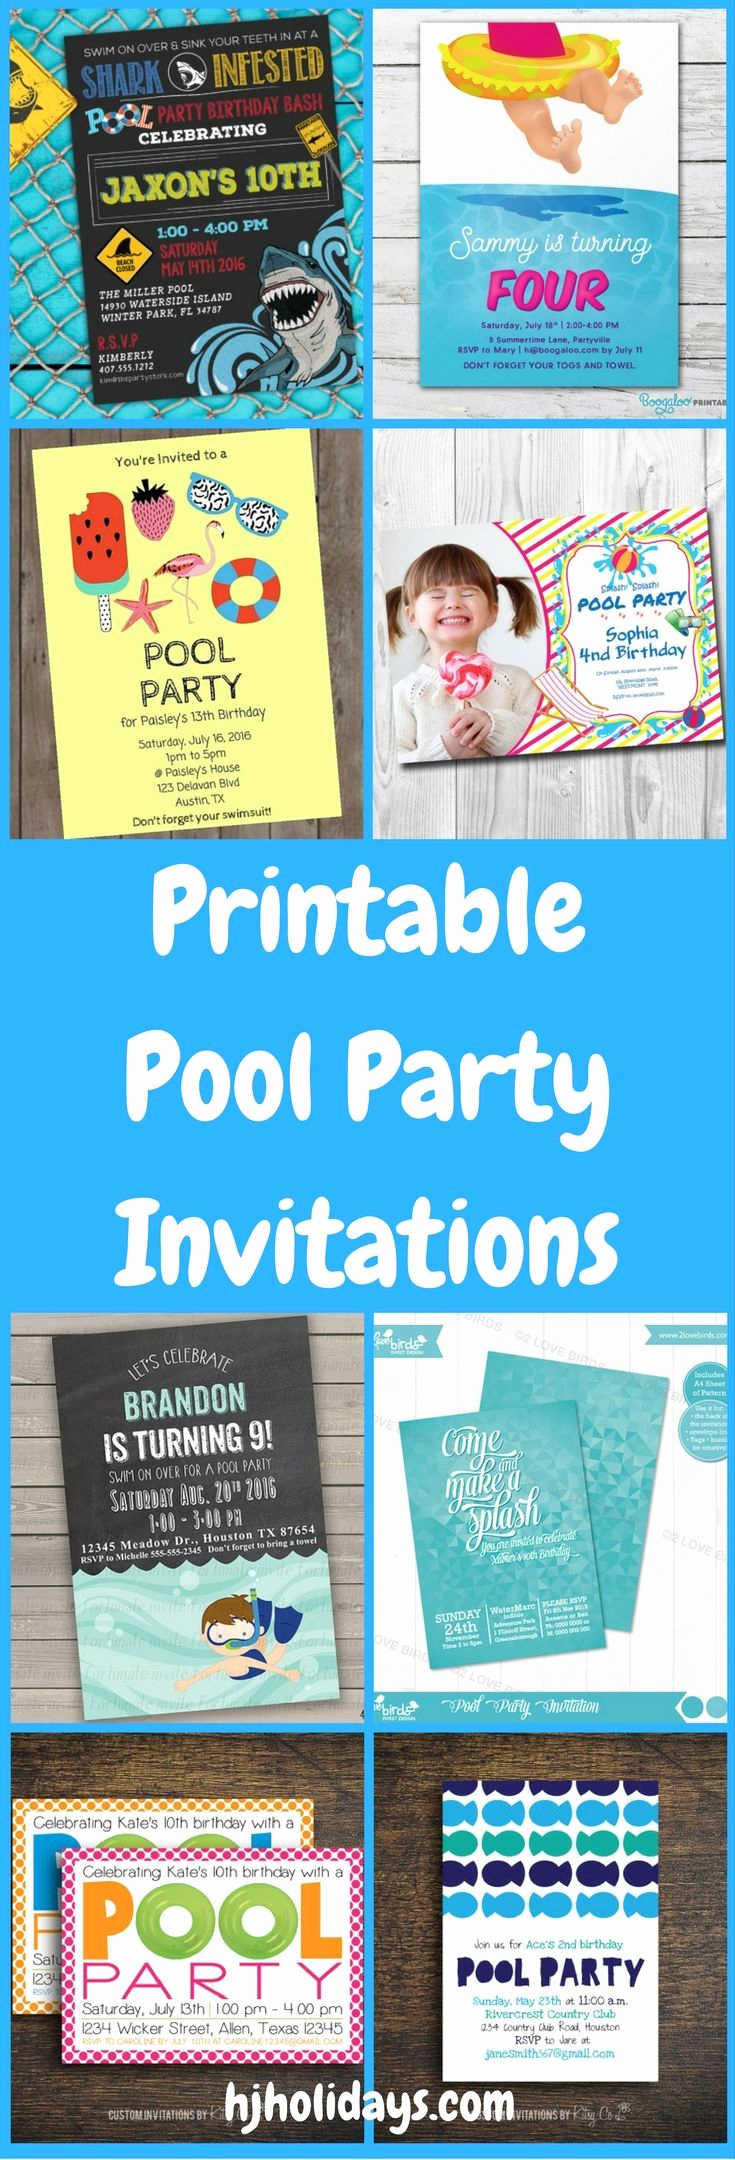 Pool Party Invitation Ideas Unique Printable Pool Party Invitations for Kids